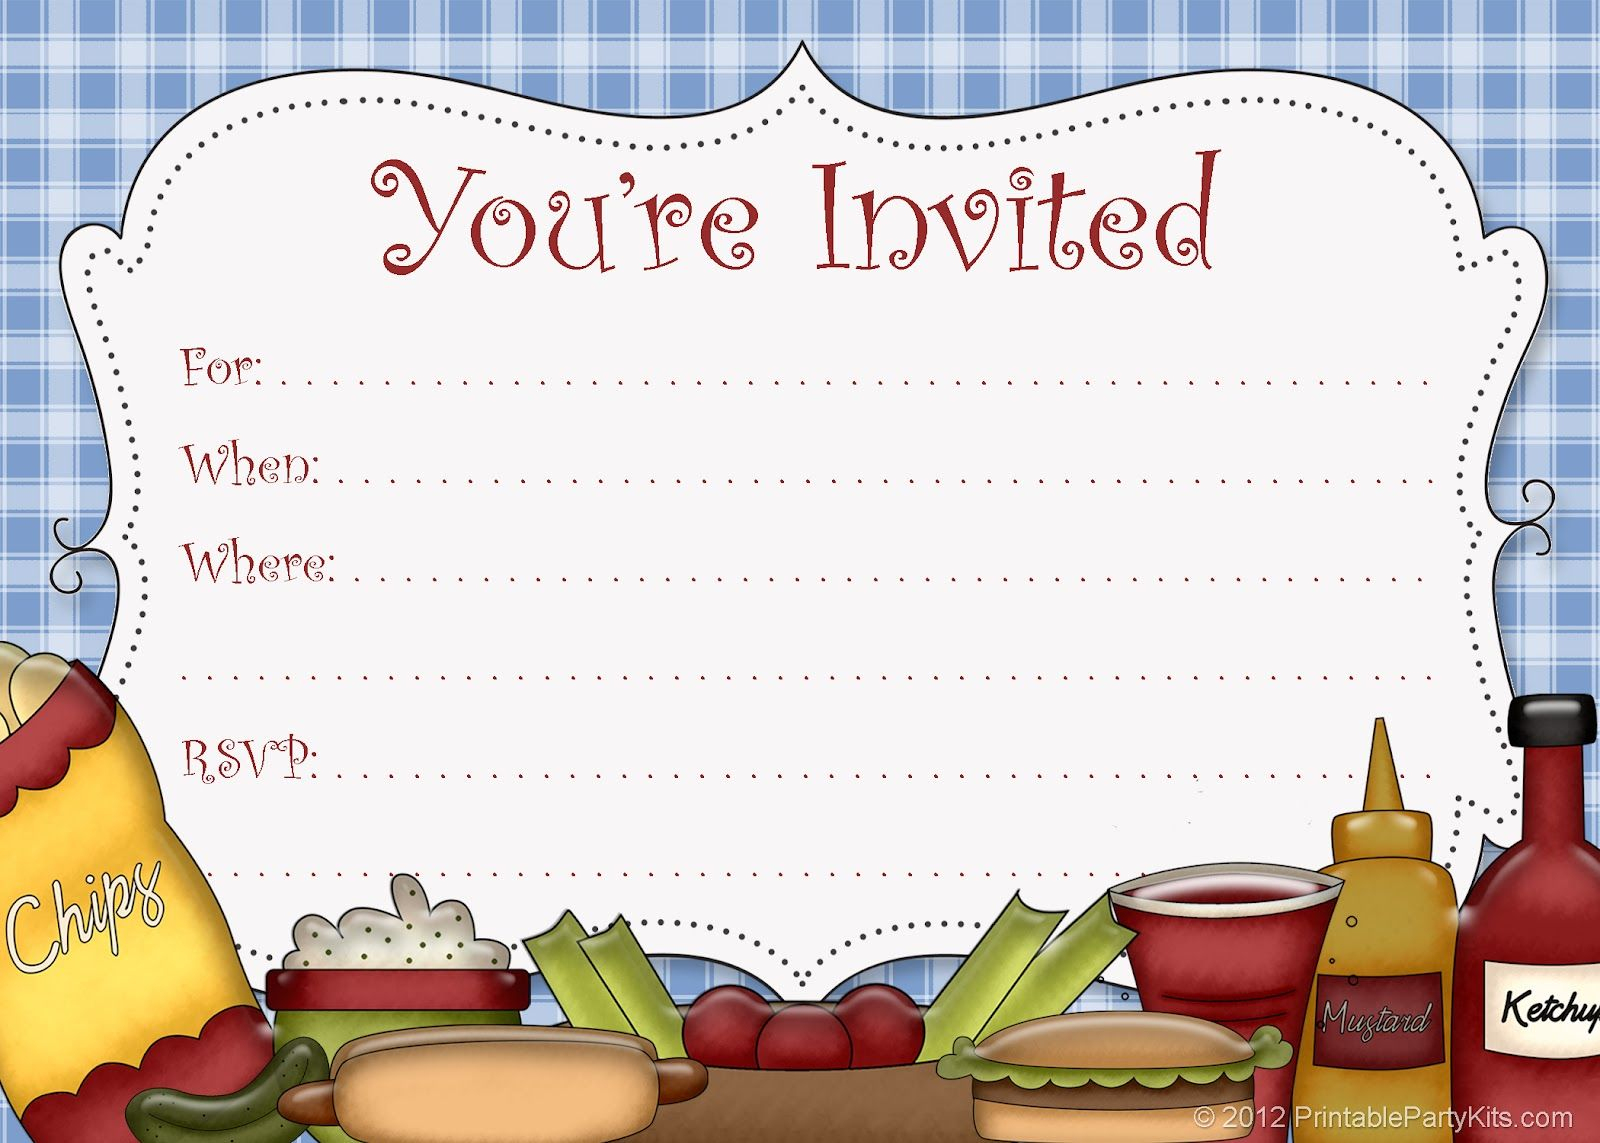 5 Best Images Of Free Printable Cookout Invitations | Party Things - Free Printable Cookout Invitations